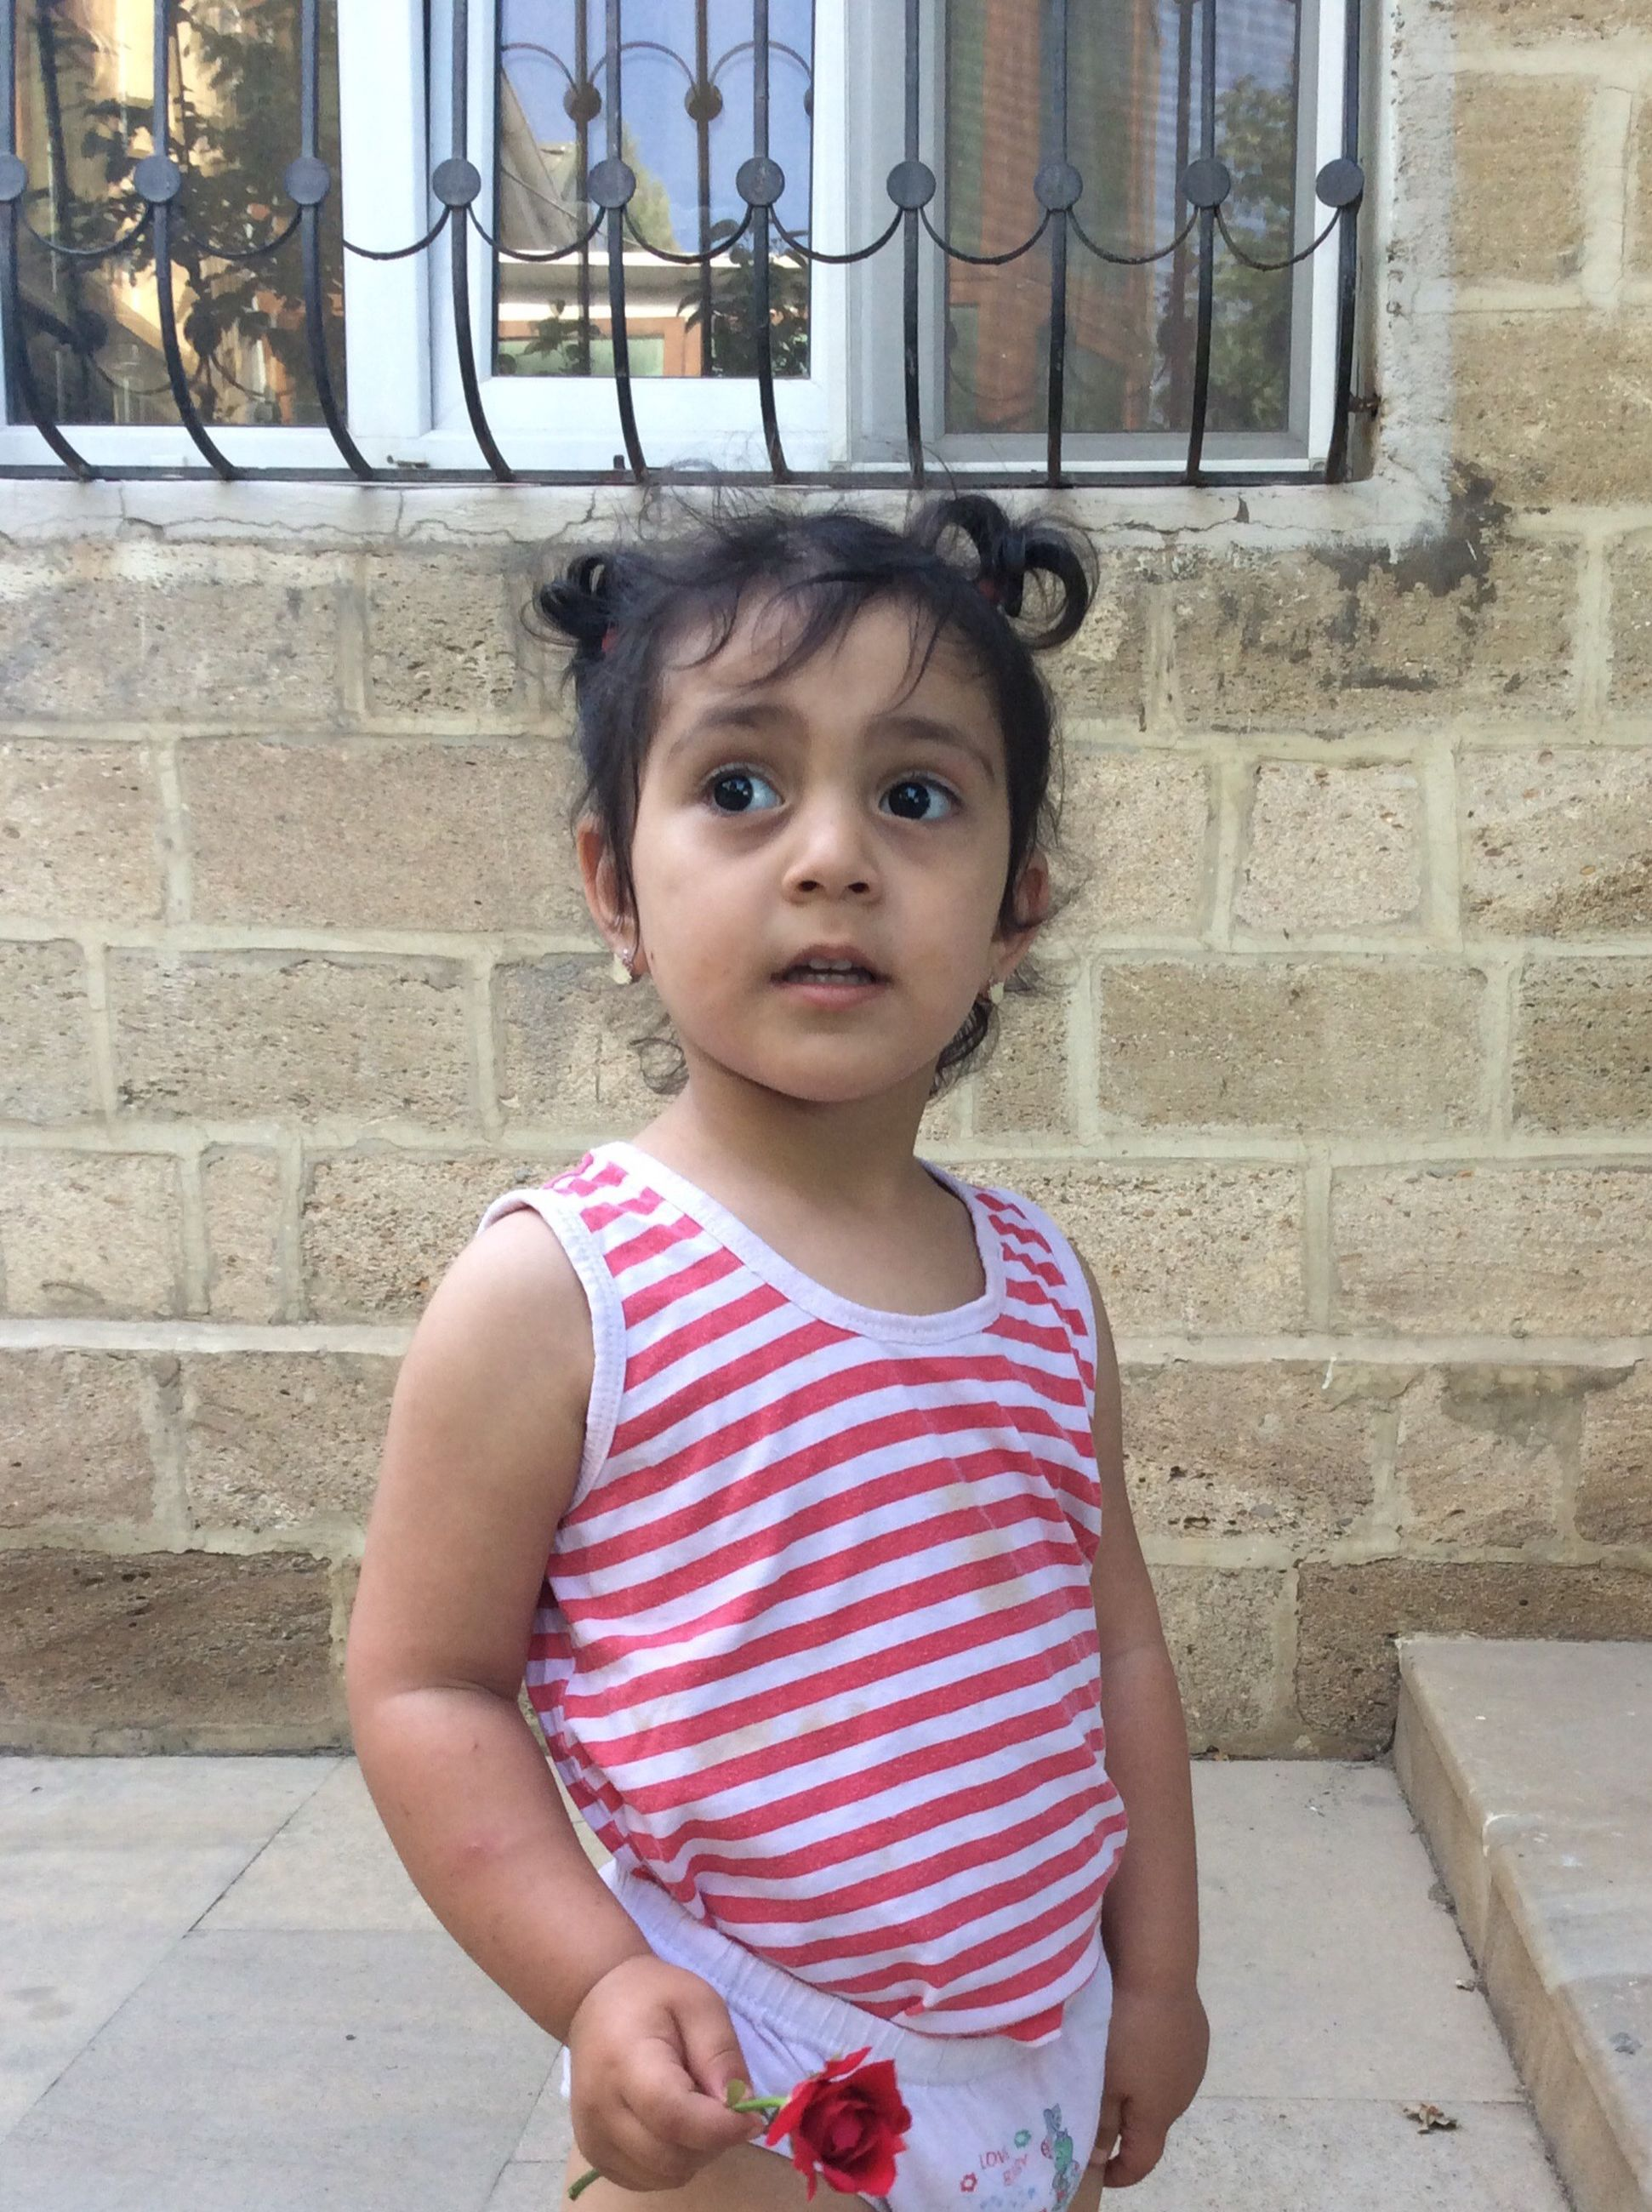 childhood, elementary age, person, cute, portrait, looking at camera, innocence, front view, girls, casual clothing, boys, lifestyles, smiling, leisure activity, standing, happiness, waist up